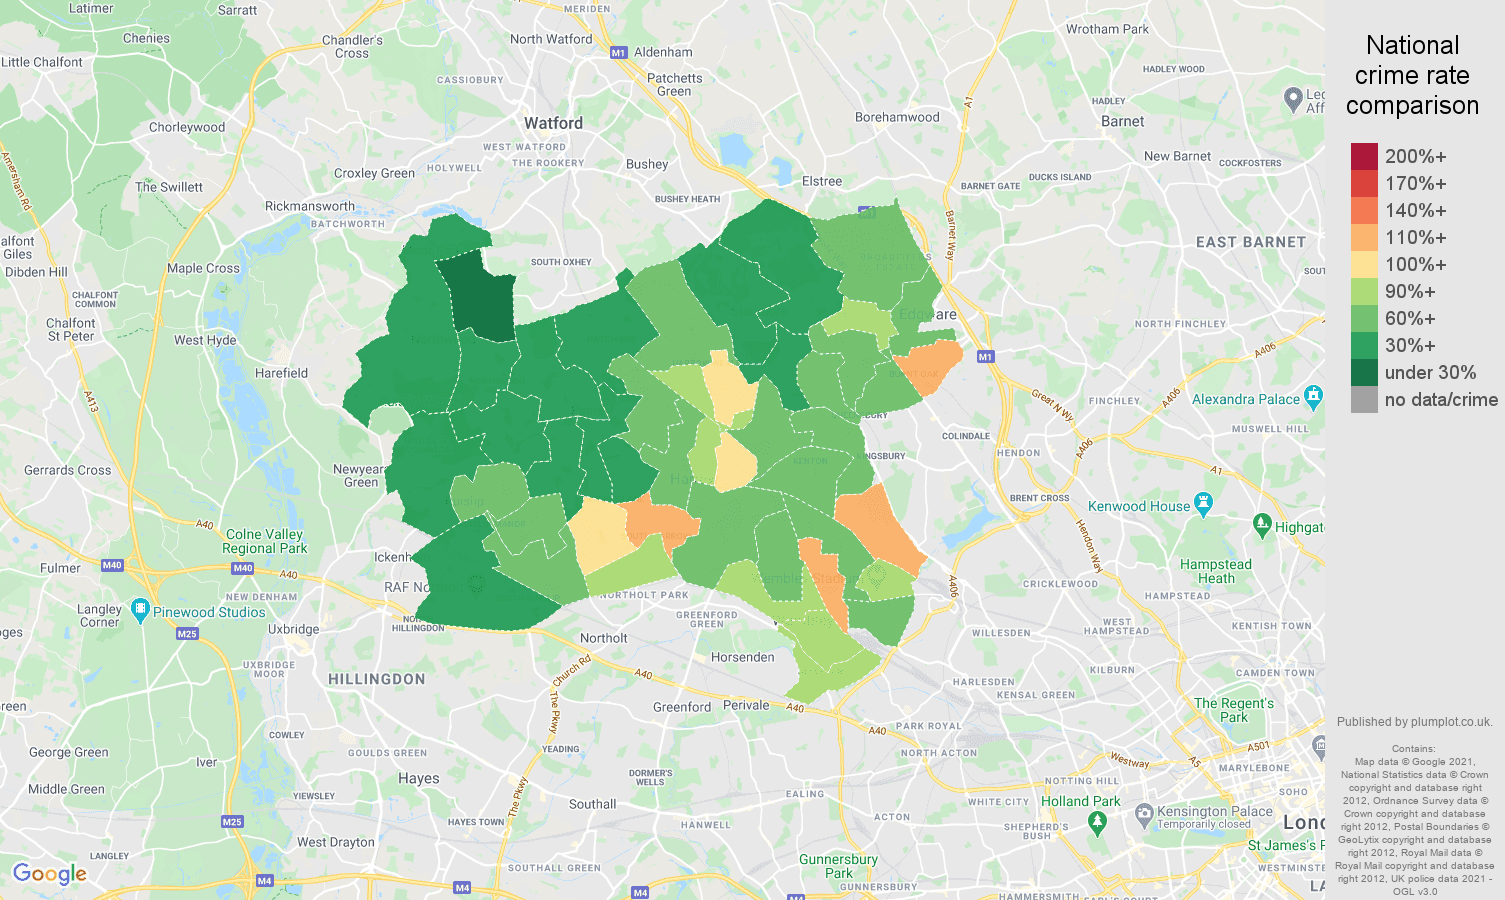 Harrow violent crime rate comparison map